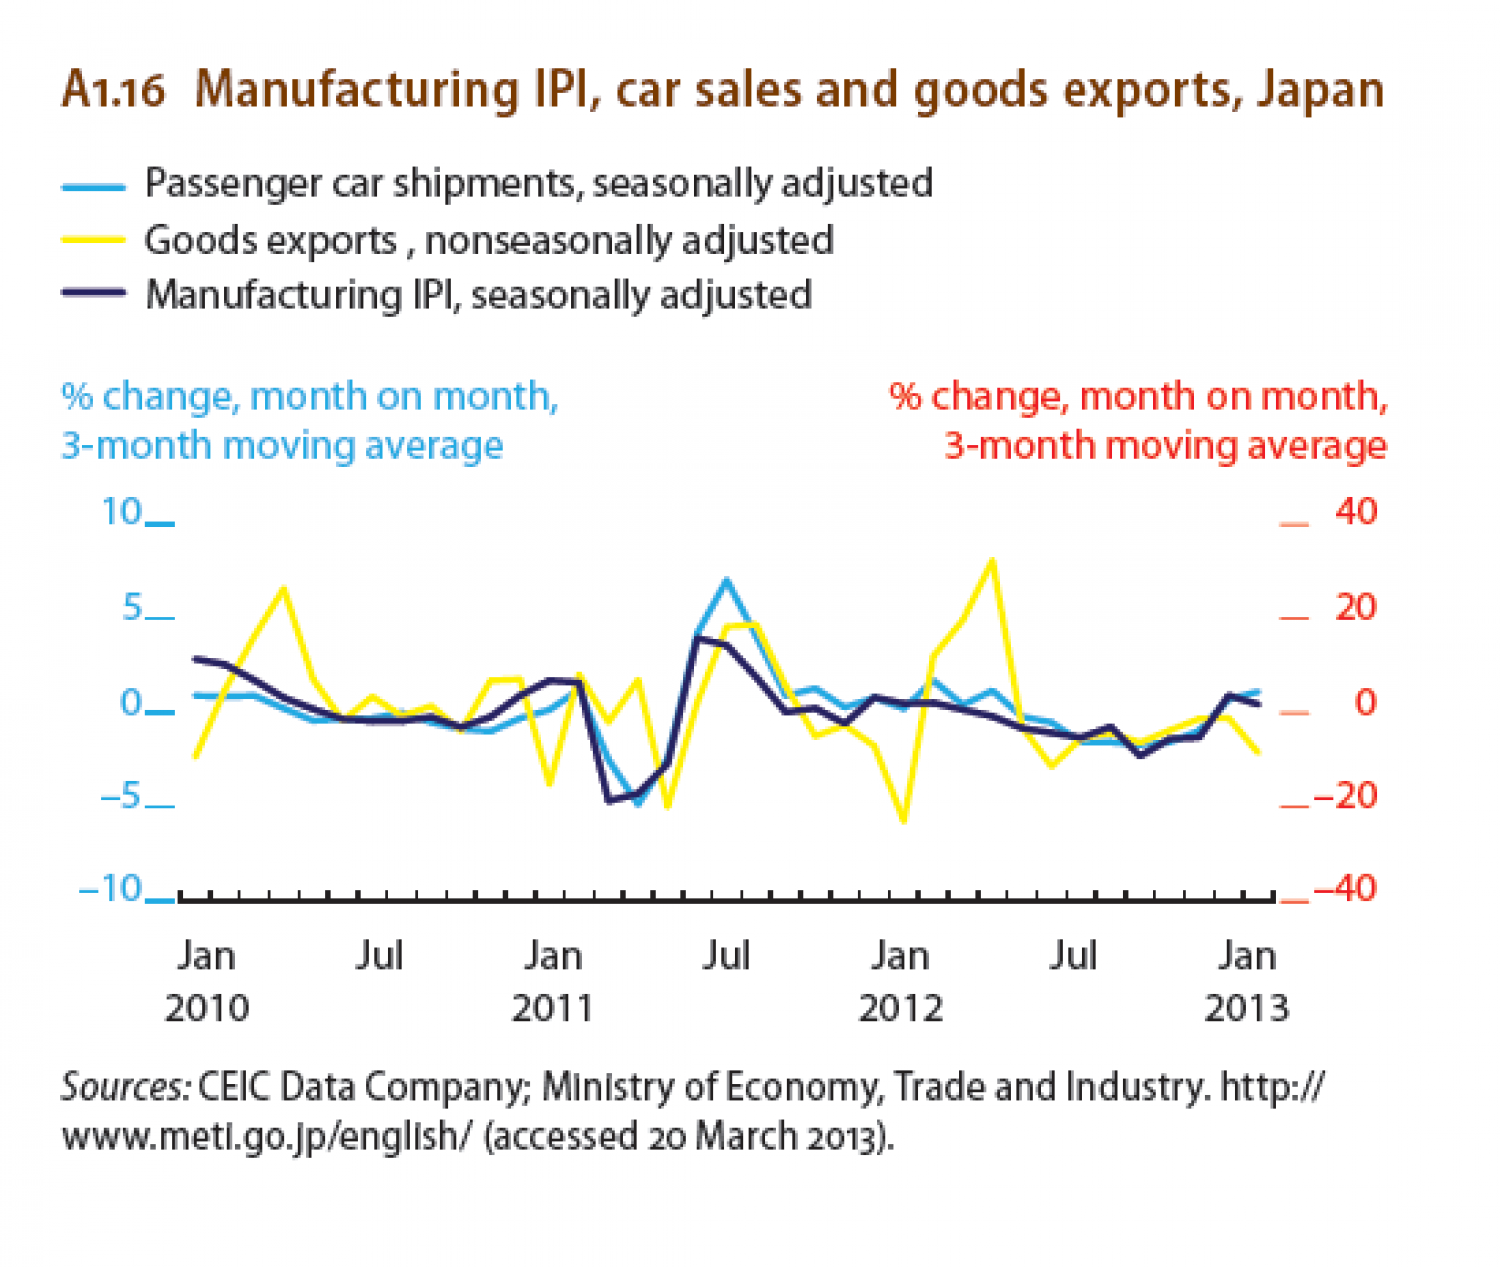 Manufacturing IPI, car sales and goods exports, Japan Infographic